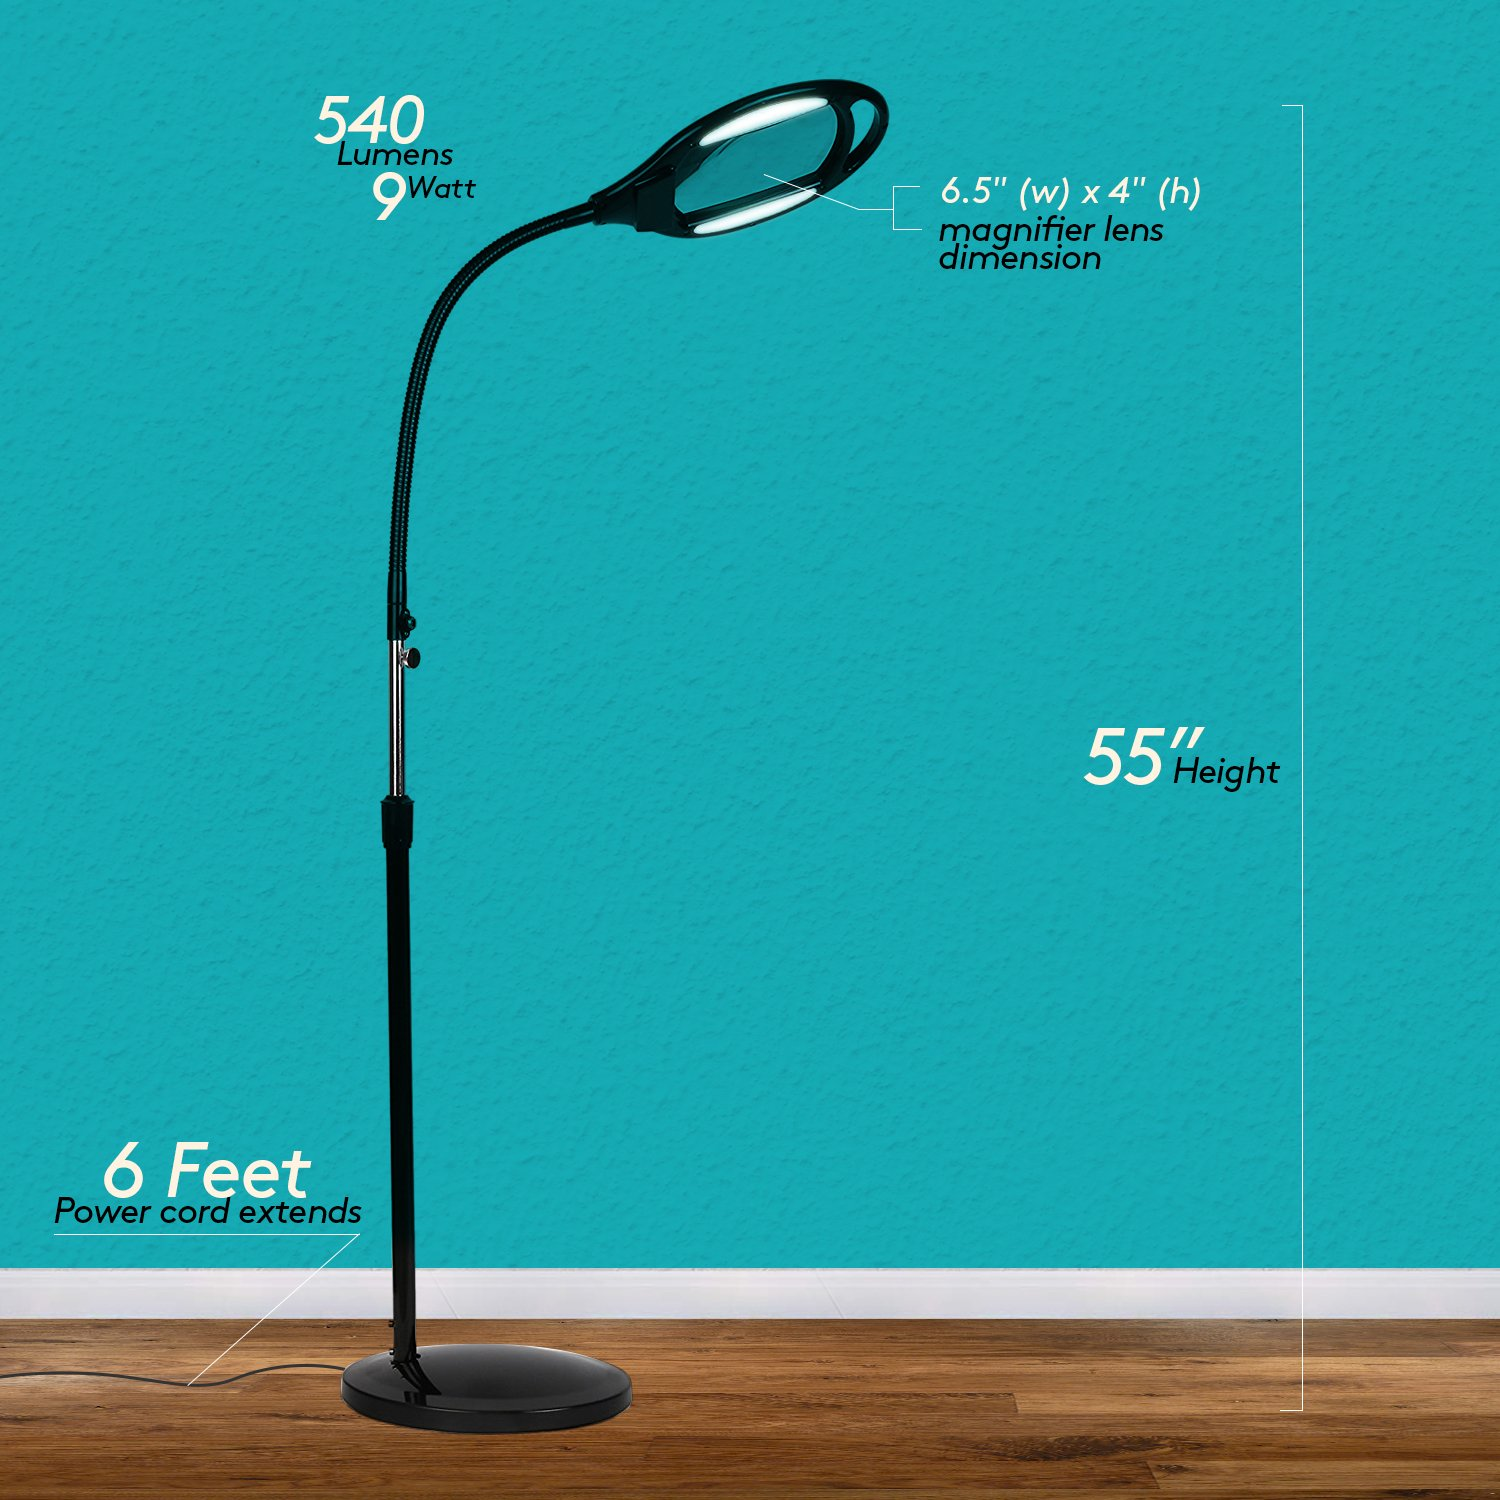 Brightech LightView Pro LED Magnifying Glass Floor Lamp - Magnifier With Bright Light For Reading, Tasks & Crafts - Height Adjustable Gooseneck Standing Lighting - Black by Brightech (Image #9)